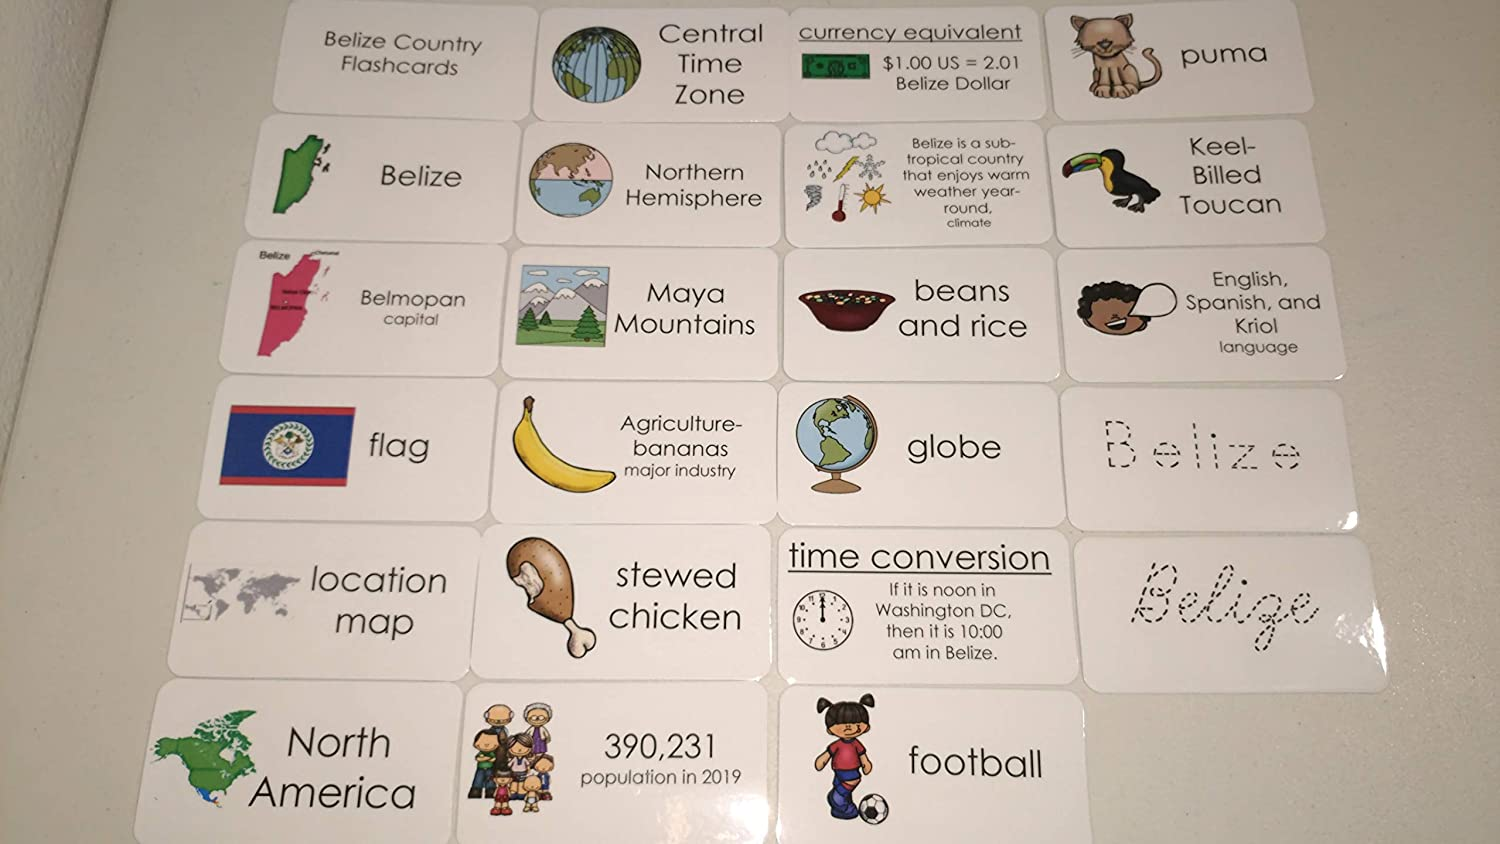 23 Belize Country Geography Flashcards.